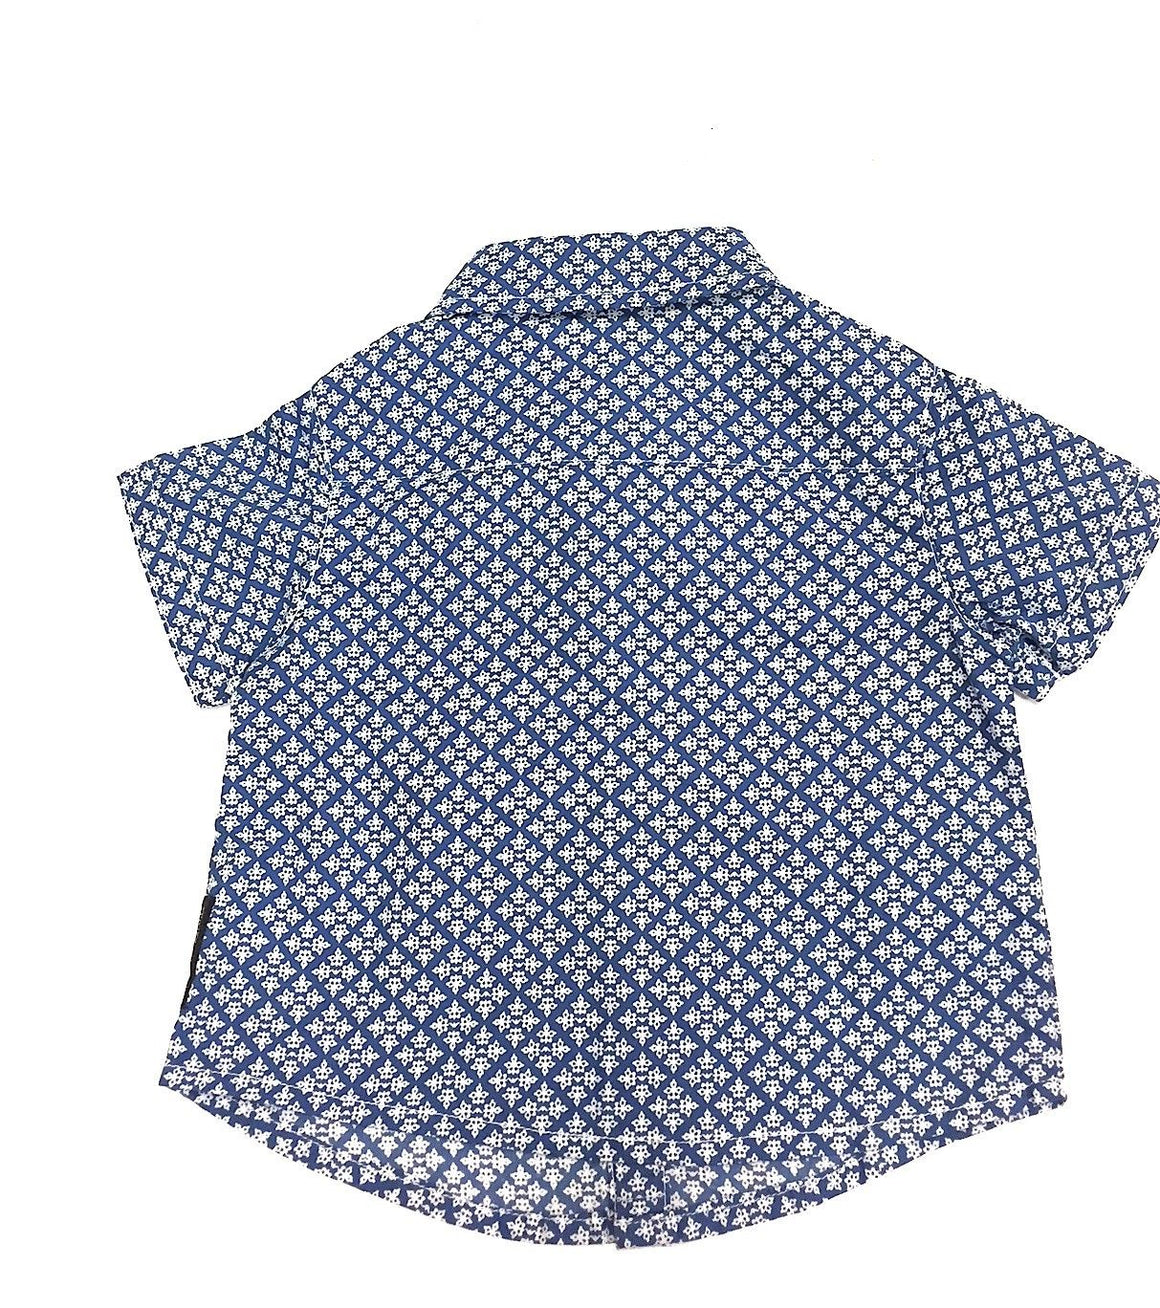 bisbiz.com ARMANI Baby Blue & White Snowflake-Print Cotton Buttoned-Down Short Sleeve Baby Shirt Size: 3 Months - Bis Luxury Resale